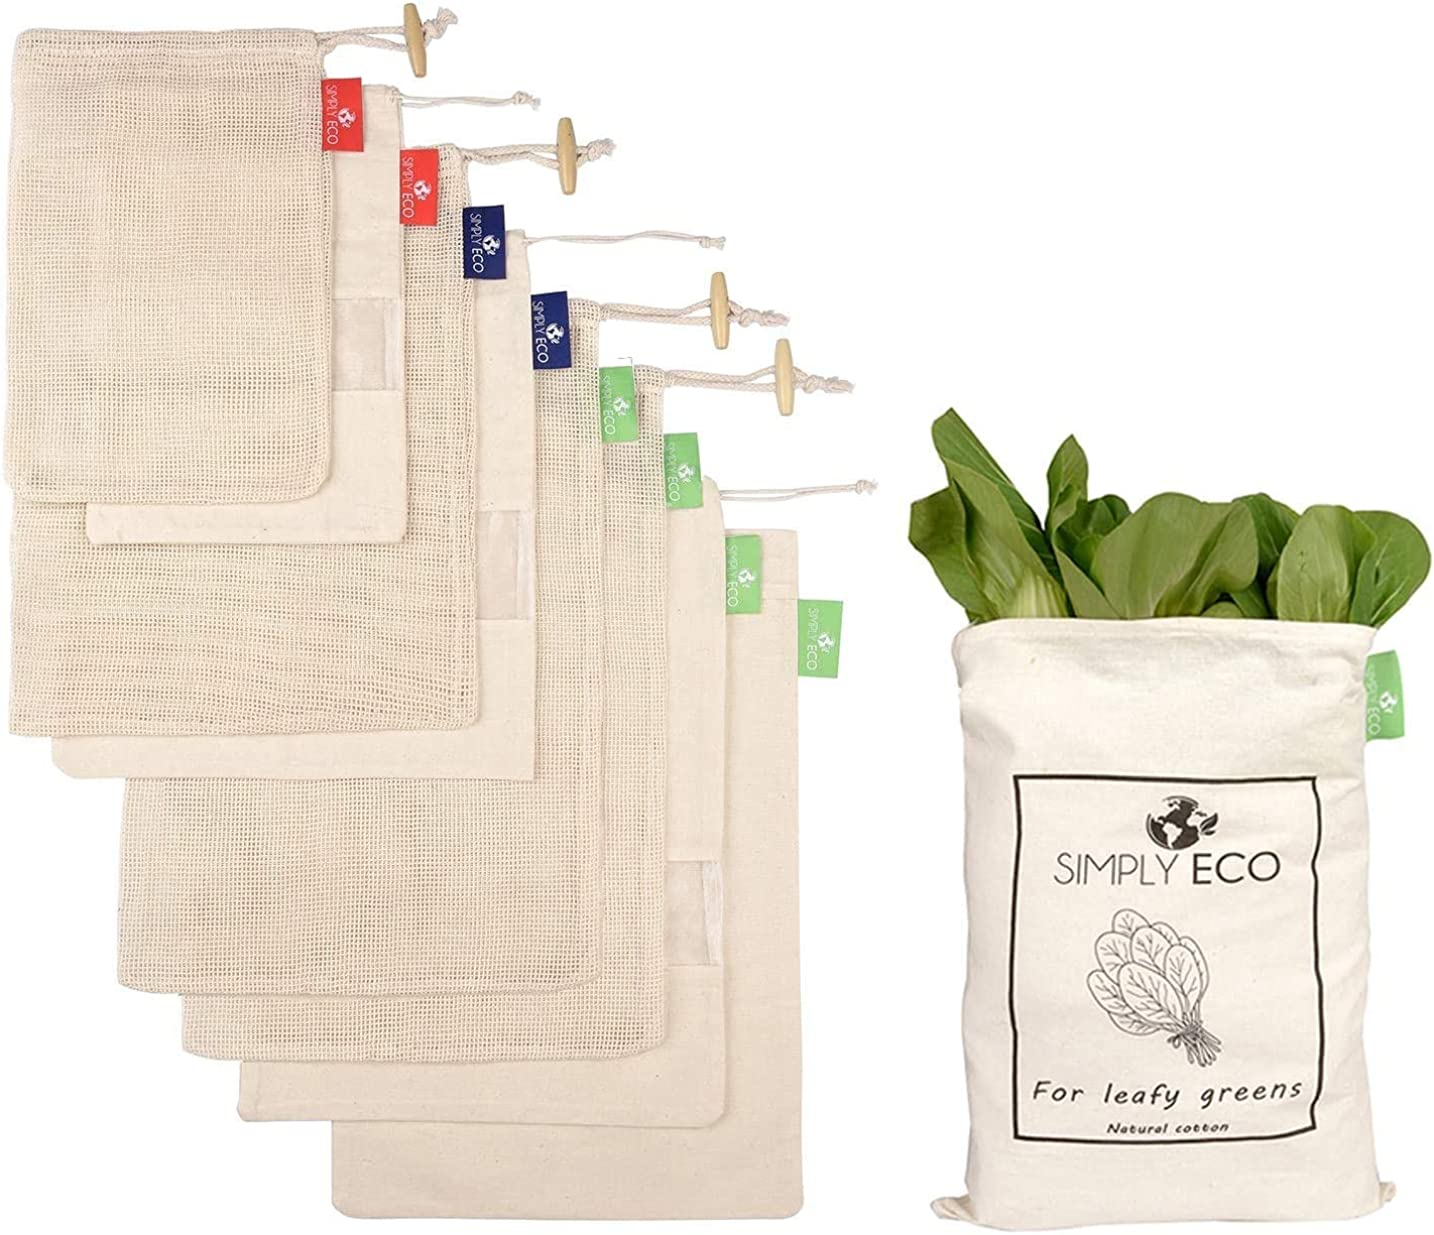 8 pack Natural Cotton Reusable Mesh & Muslin Produce Bags with Drawstring for Veggies, Fruits & Bulk Food Storage